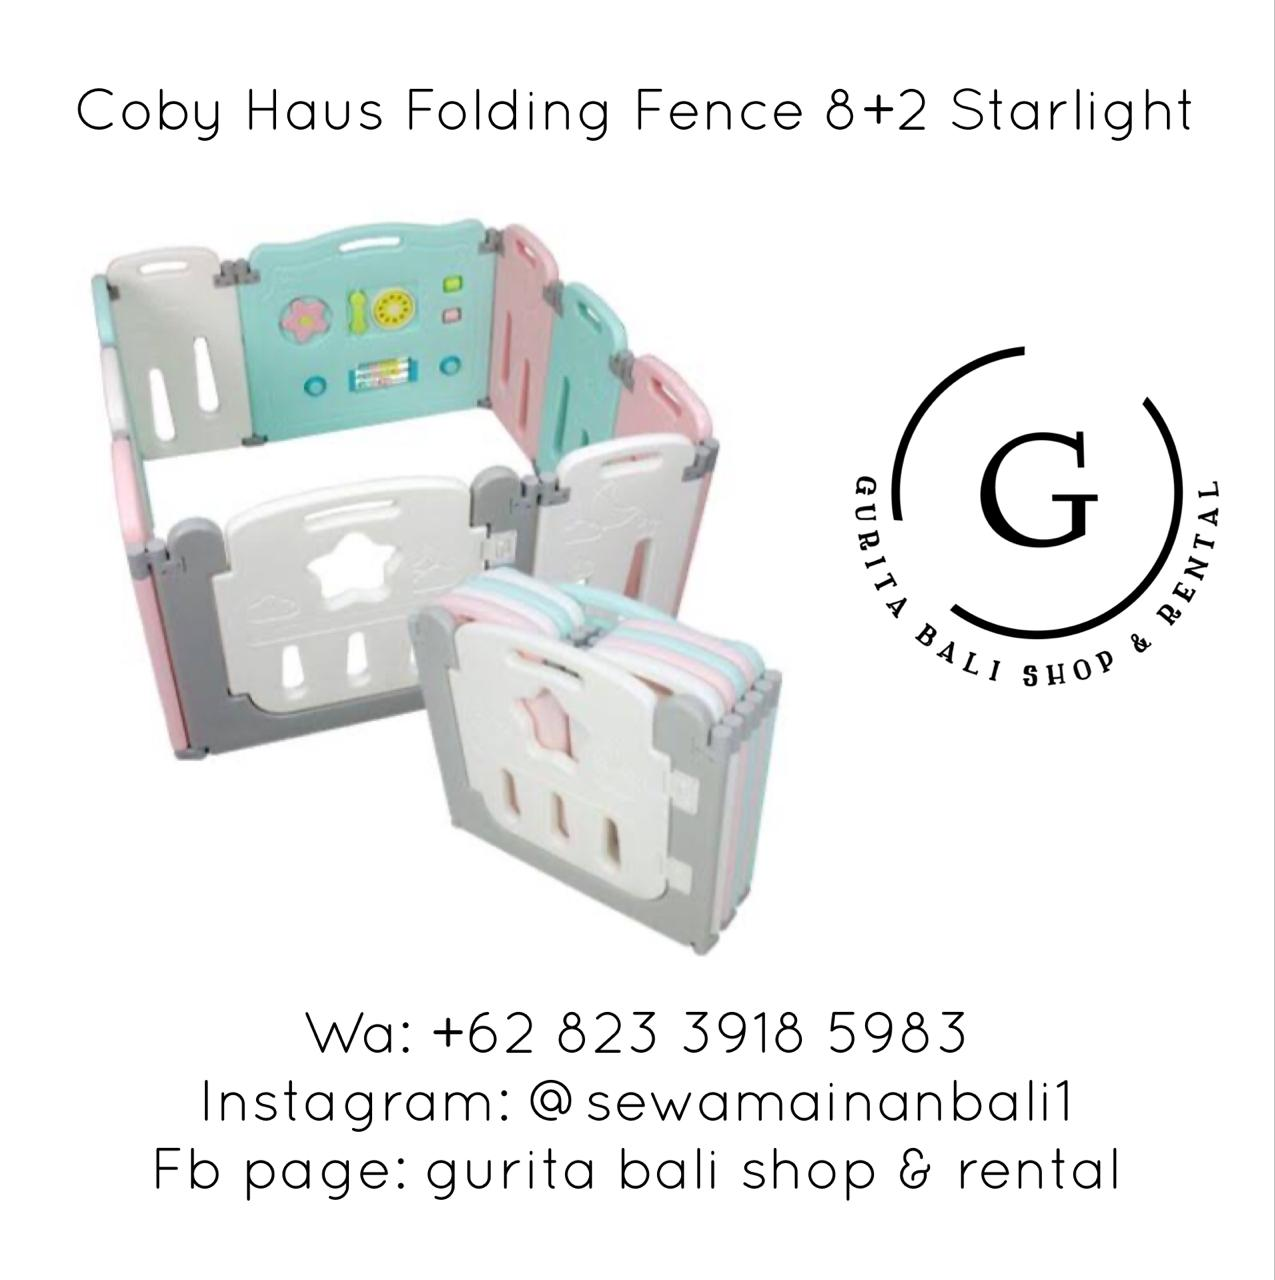 COBY HAUS FOLDING FENCE 8+2 STARLIGHT 1